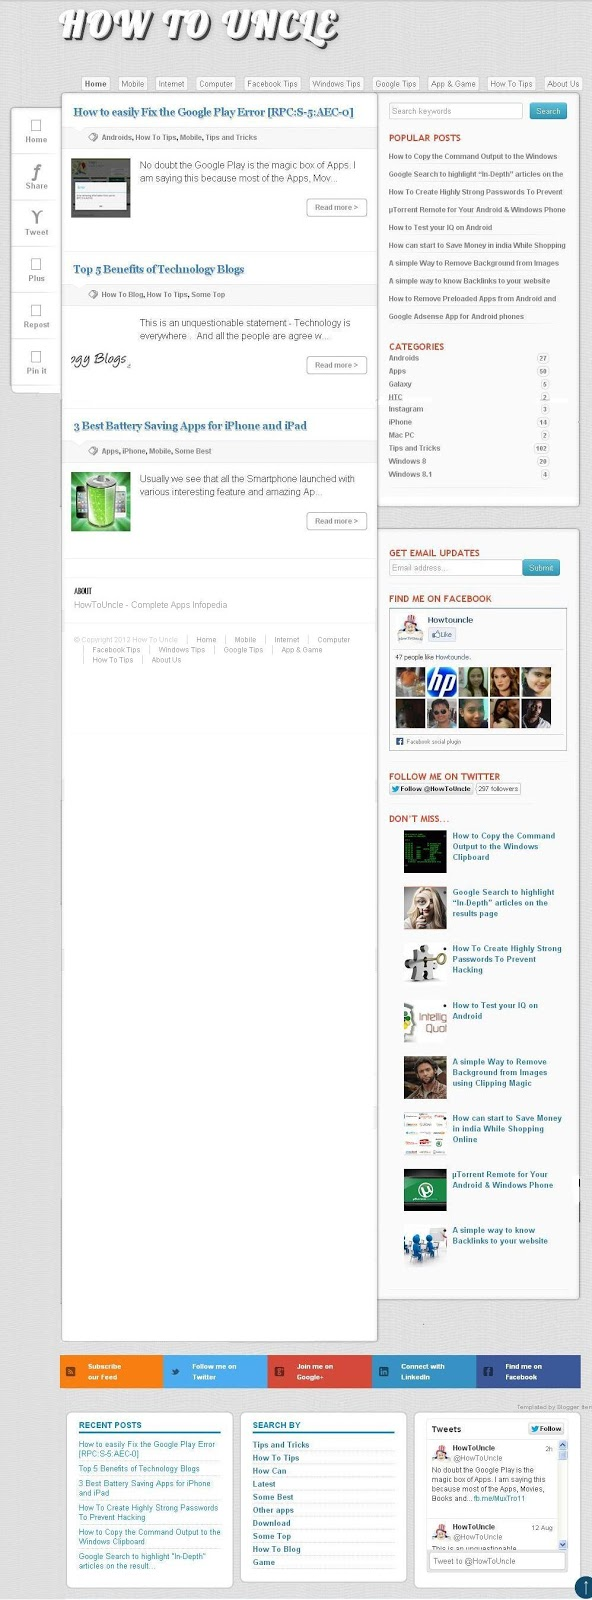 Why Only Few Posts Appear on Blog Homepage?